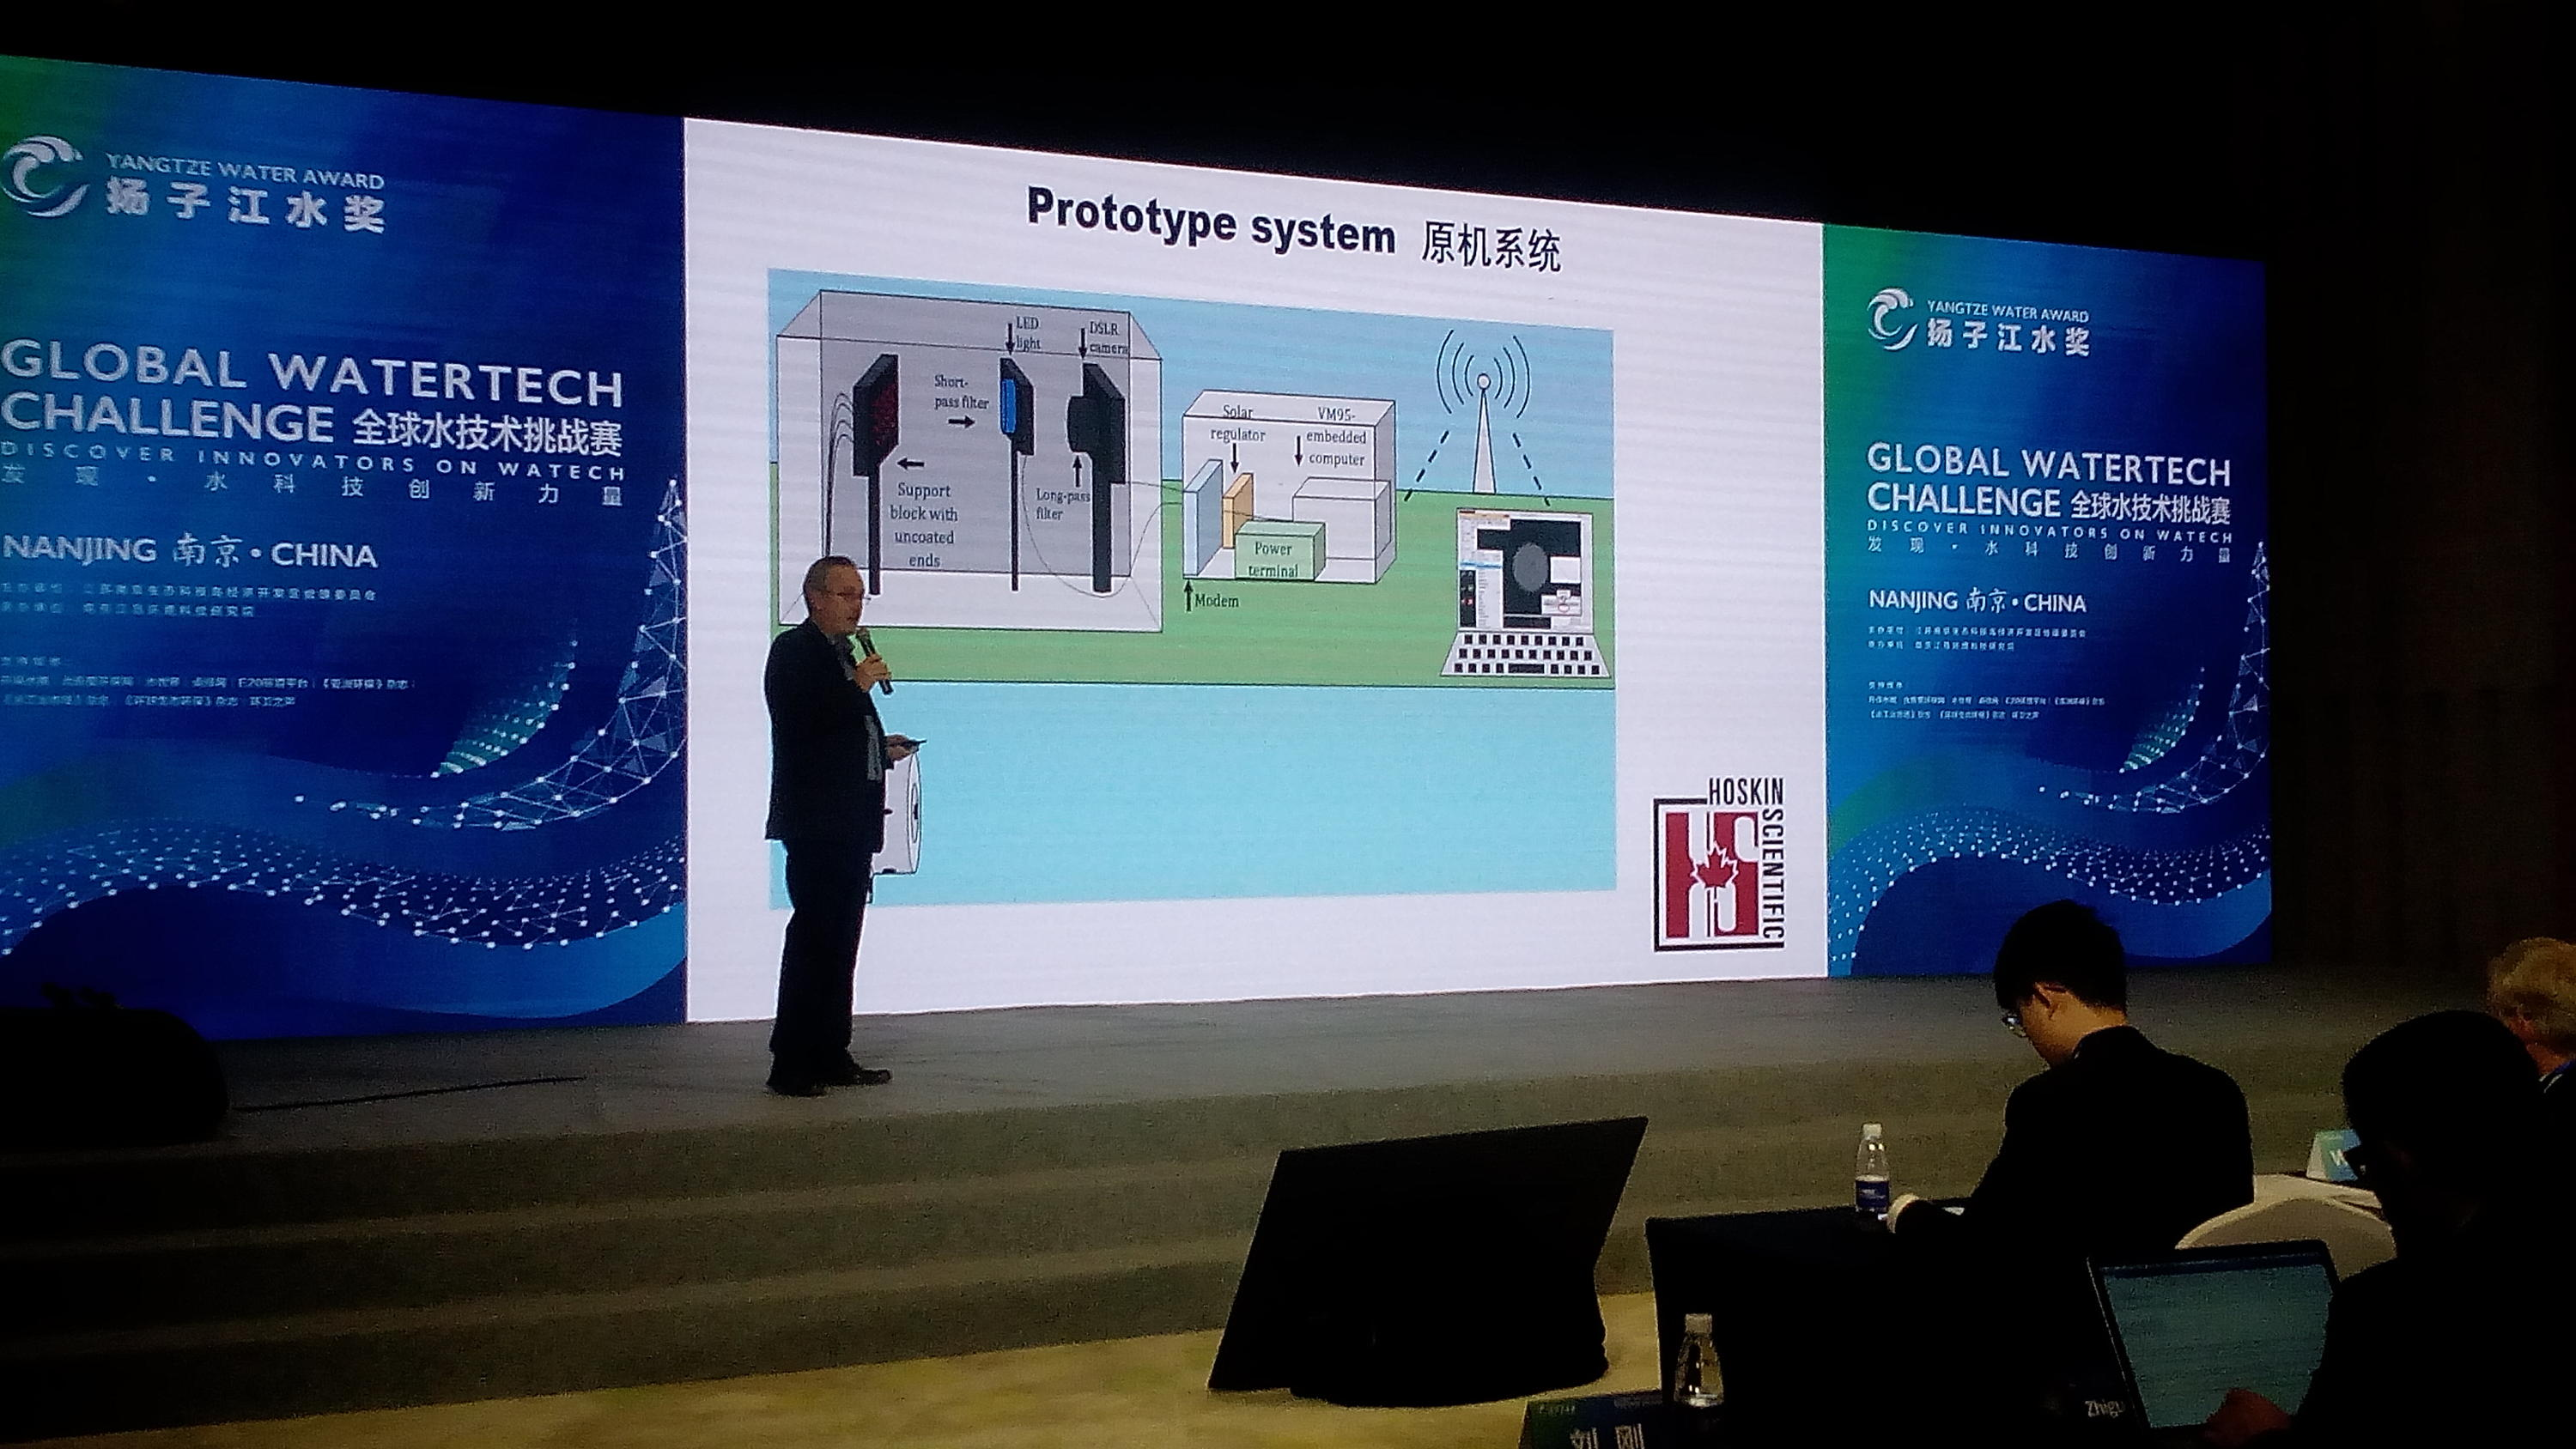 Philippe Van Cappellen presents at the Global WaterTech Challenge in Nanjing